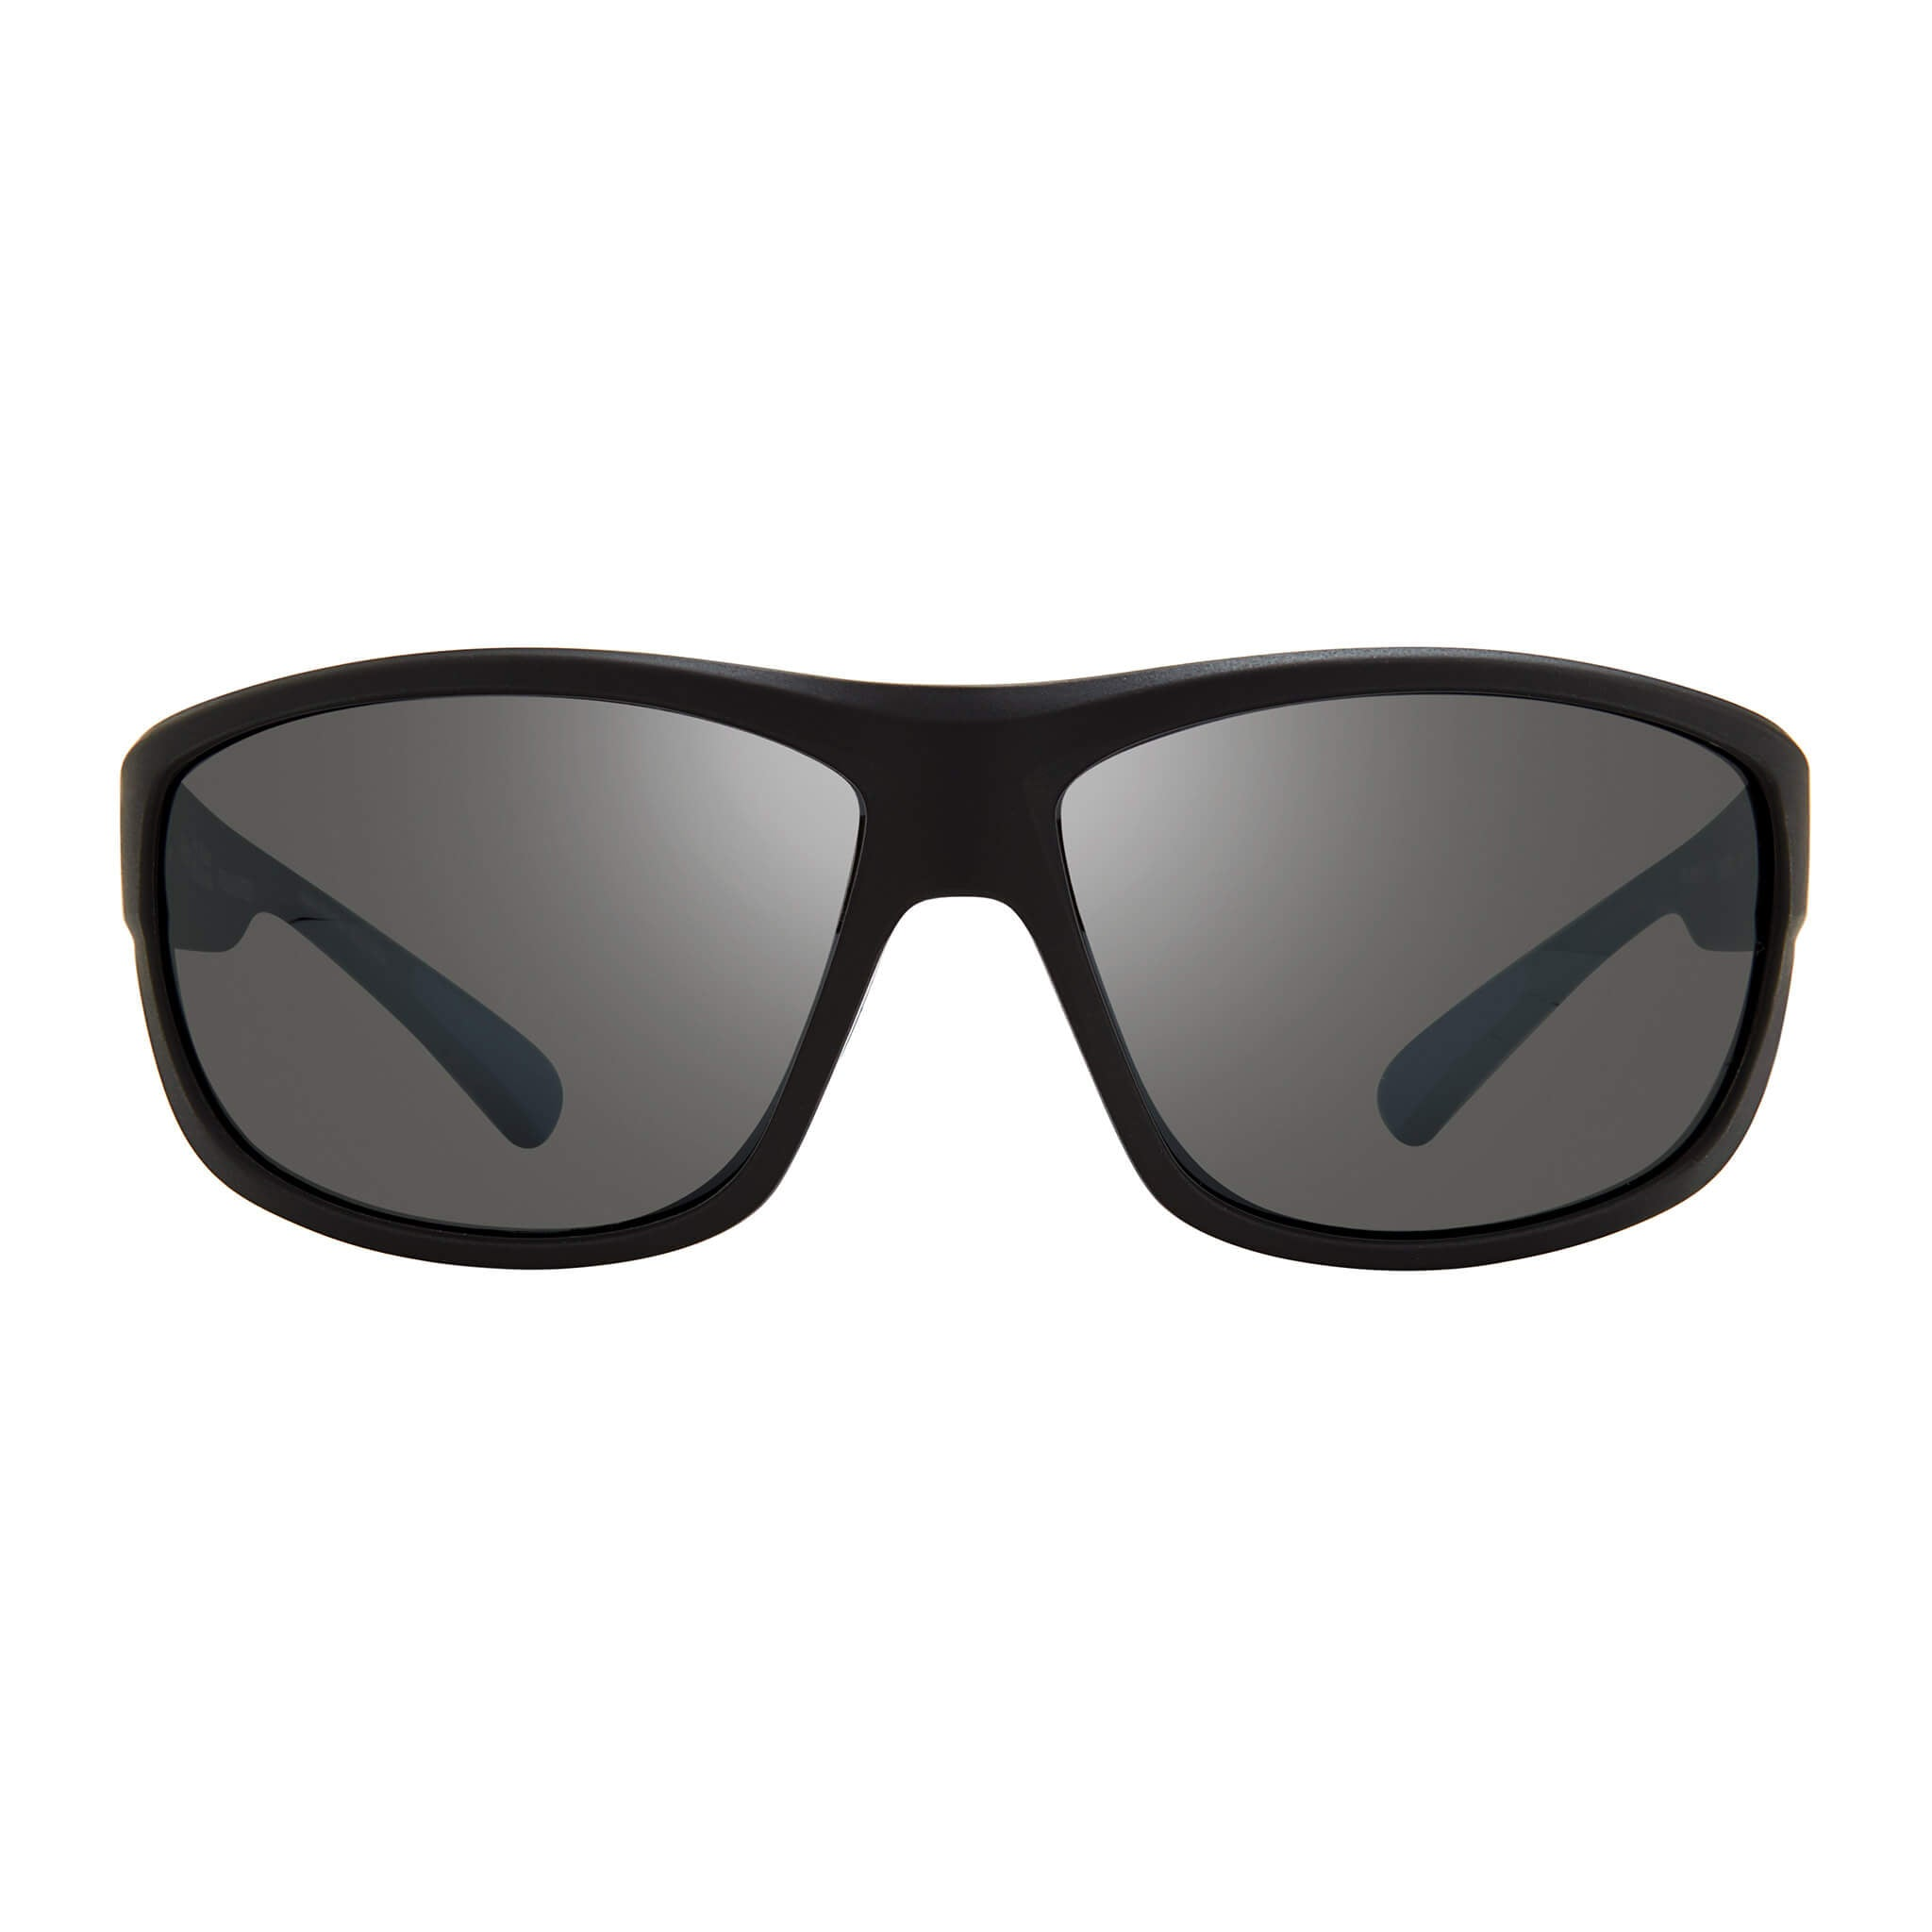 Matte black + graphite lens:Front view of Bear Grylls Revo Caper Sunglasses